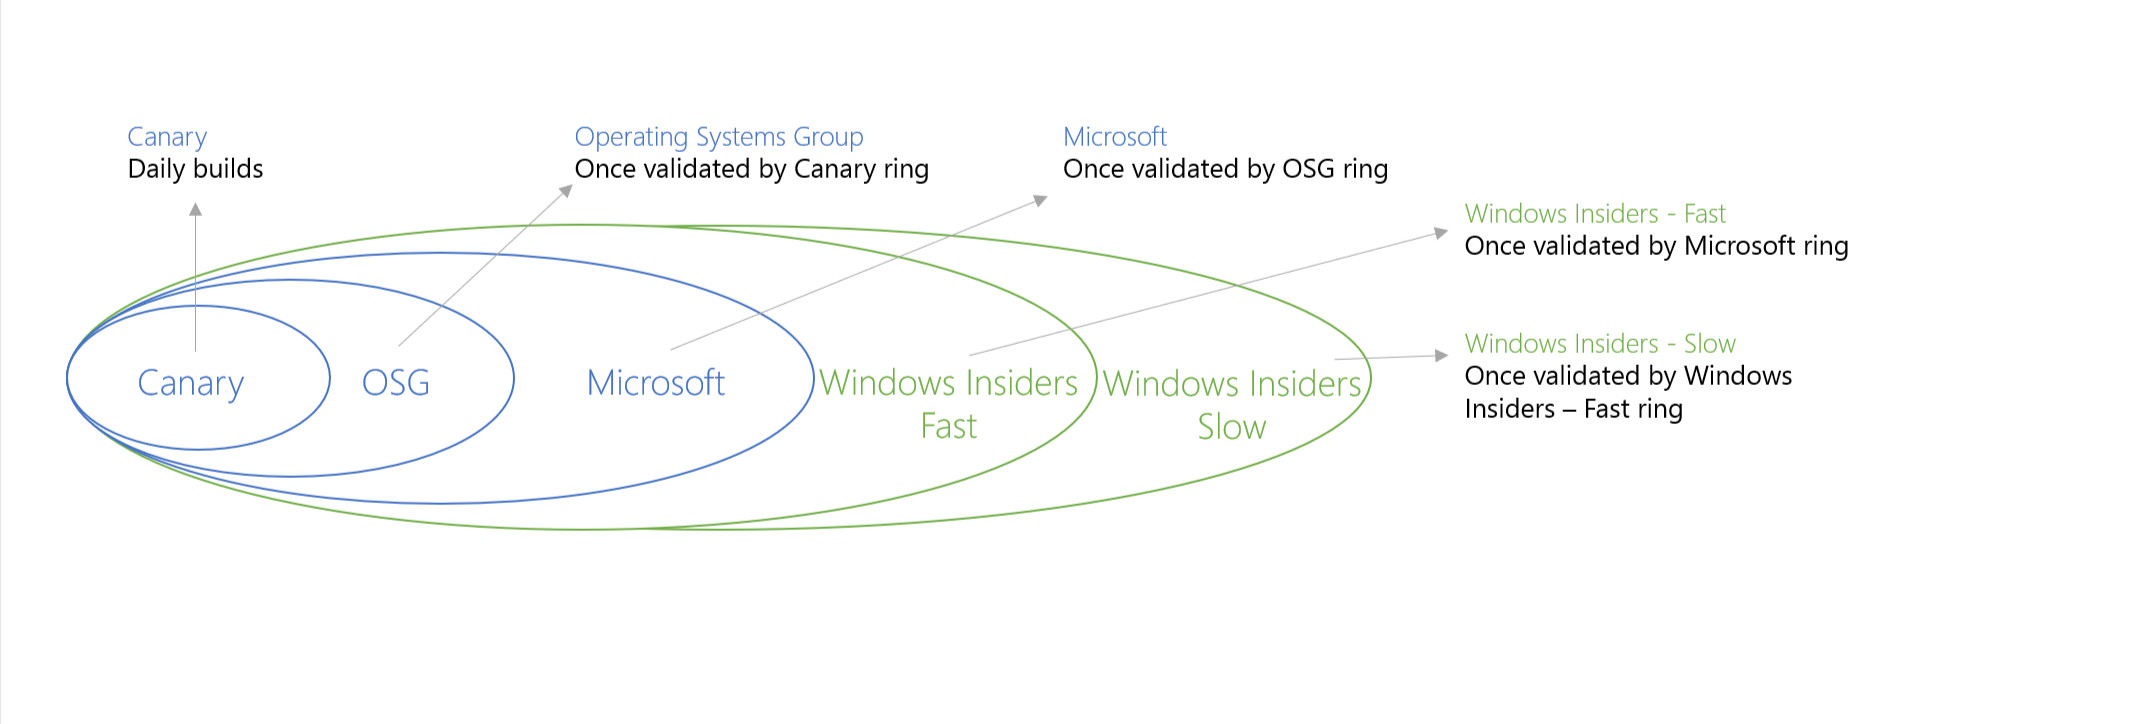 The Windows Insider Program's Slow ring is becoming a joke - Neowin